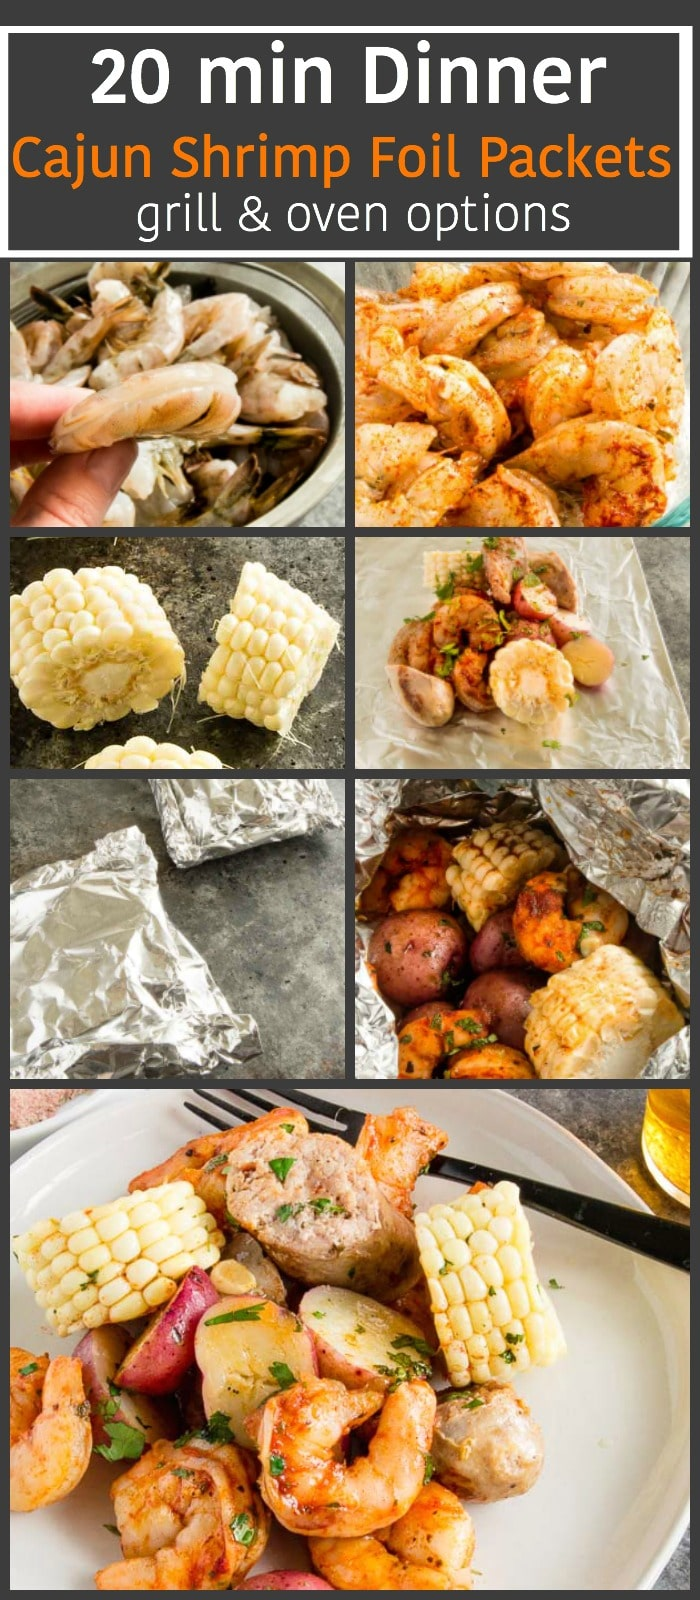 This Cajun Grilled Shrimp Foil Packetcan be made ahead ready to grill when you're ready to eat. 20 minute Meal, easily customizable, full of delicious cajun/creole flavors. Oven option. #shrimp, #grilling #foilpacket #bbq #grilledfish